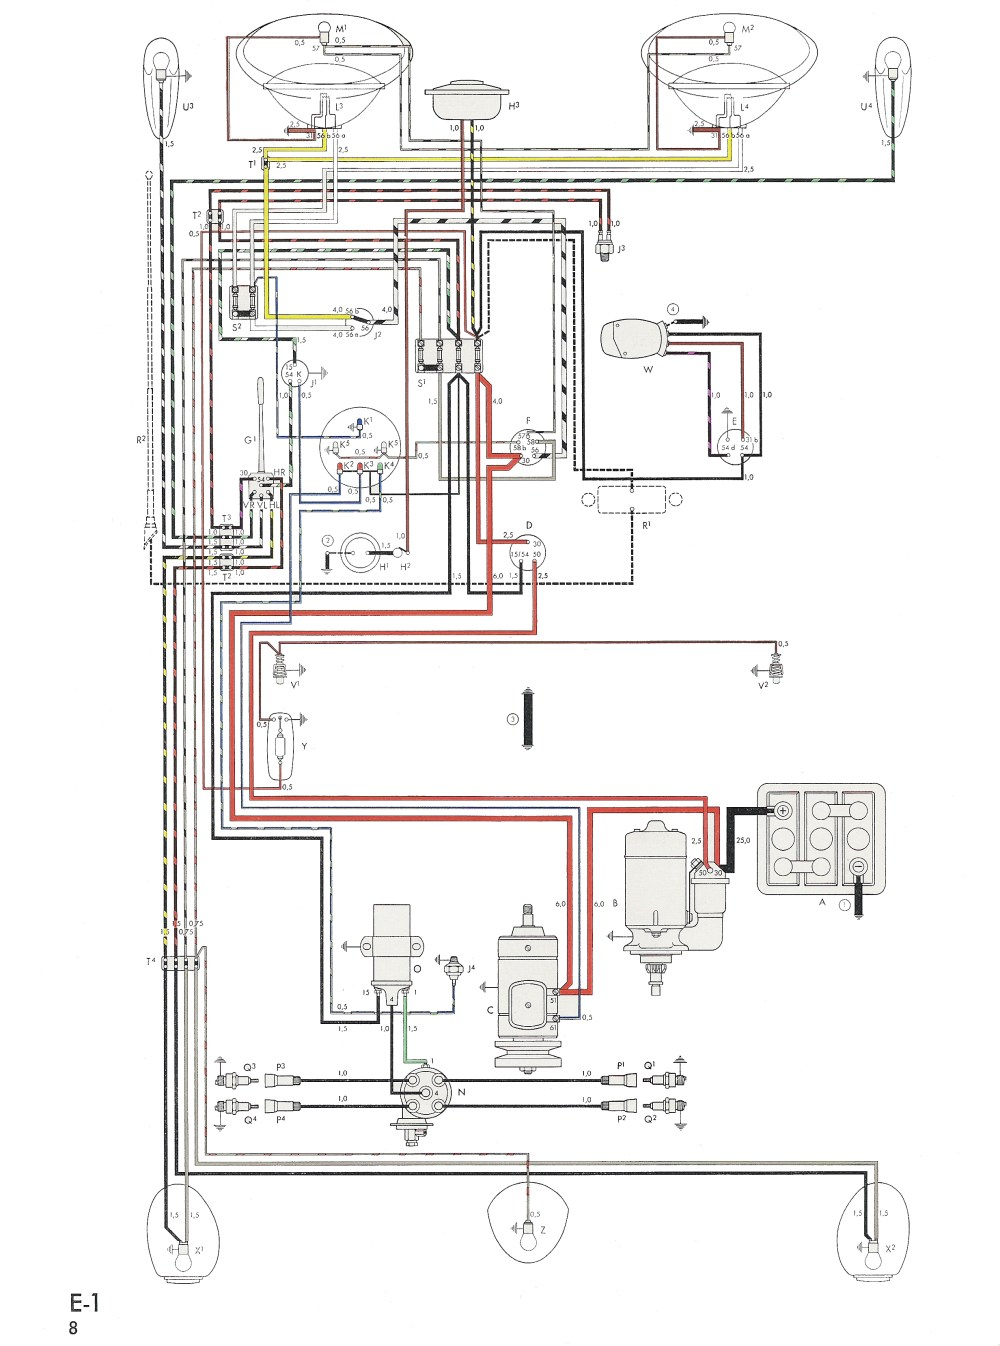 medium resolution of thesamba com type 1 wiring diagrams mercury mr52 wiring diagram mercury optimax wiring diagram